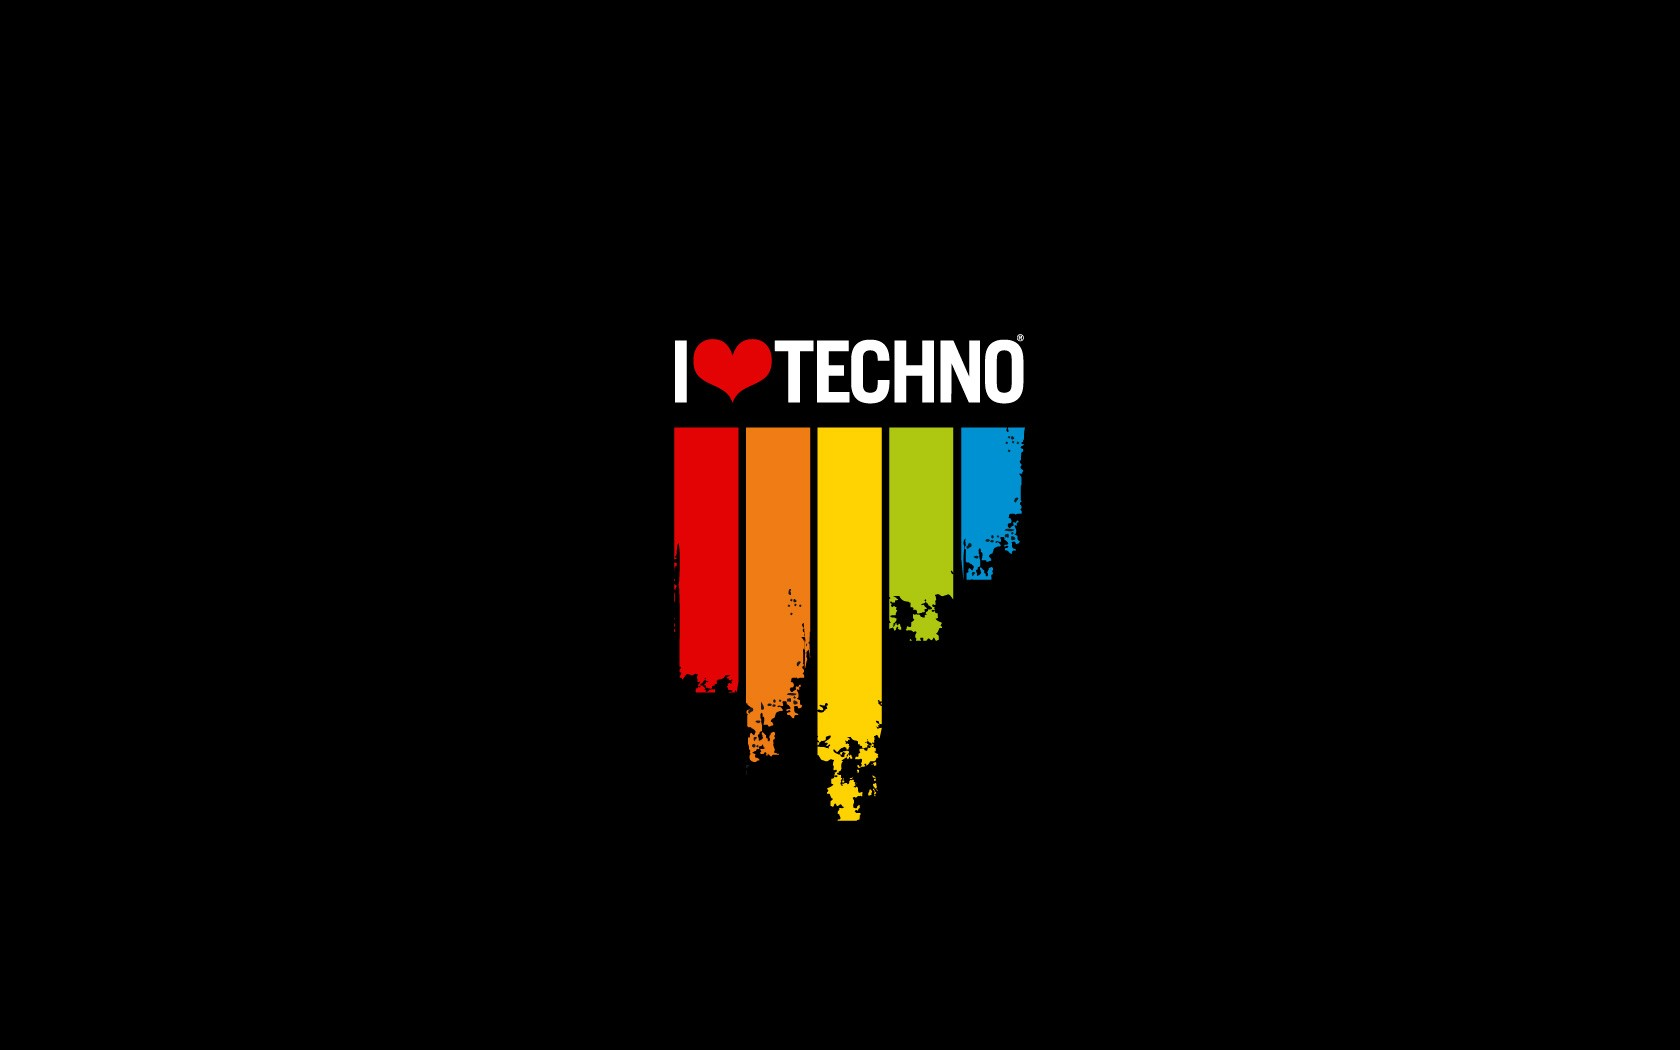 Gm Wallpaper For Love : Techno Quotes. QuotesGram